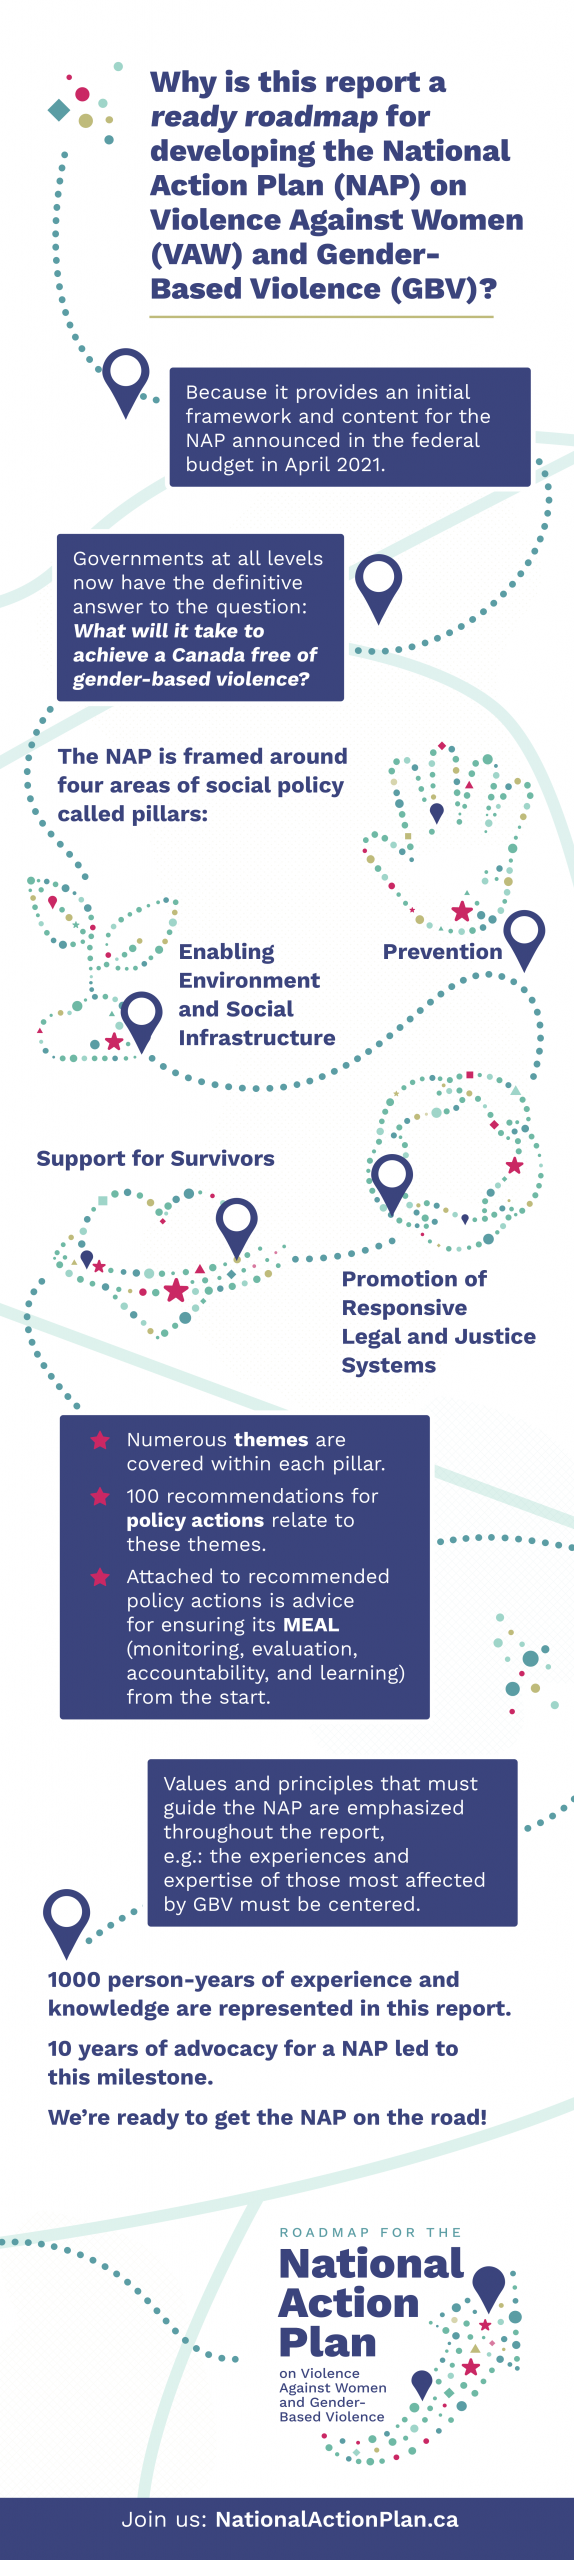 Why is this report a ready roadmap for developing the National Action Plan on Violence Against Women and Gender-based Violence? Because it provides an initial framework and content for a NAP announced in the federal budget in April 2021. Governments at all levels now have the definitive answer to the question: What will it take to achieve a Canada free of gender-based violence? The NAP is framed around four areas of social policy called pillars: enabling environment and social infrastructure; prevention; support for survivors; and promotion of responsive legal and justice systems. Numerous themes are covered within each pillar. 100 recommendations for policy actions relate to these themes. Attached to recommended policy actions is advice for ensuring its monitoring, evaluation, accountability and learning from the start. Values and principles that must guide the NAP are emphasized throughout the report, e.g. the experience and expertise of those most affected by GBV must be centred. 1000 person-years of experience and knowledge are represented in this report. 10 years of advocacy for a NAP led to this milestone. We're ready to get the NAP on the road!